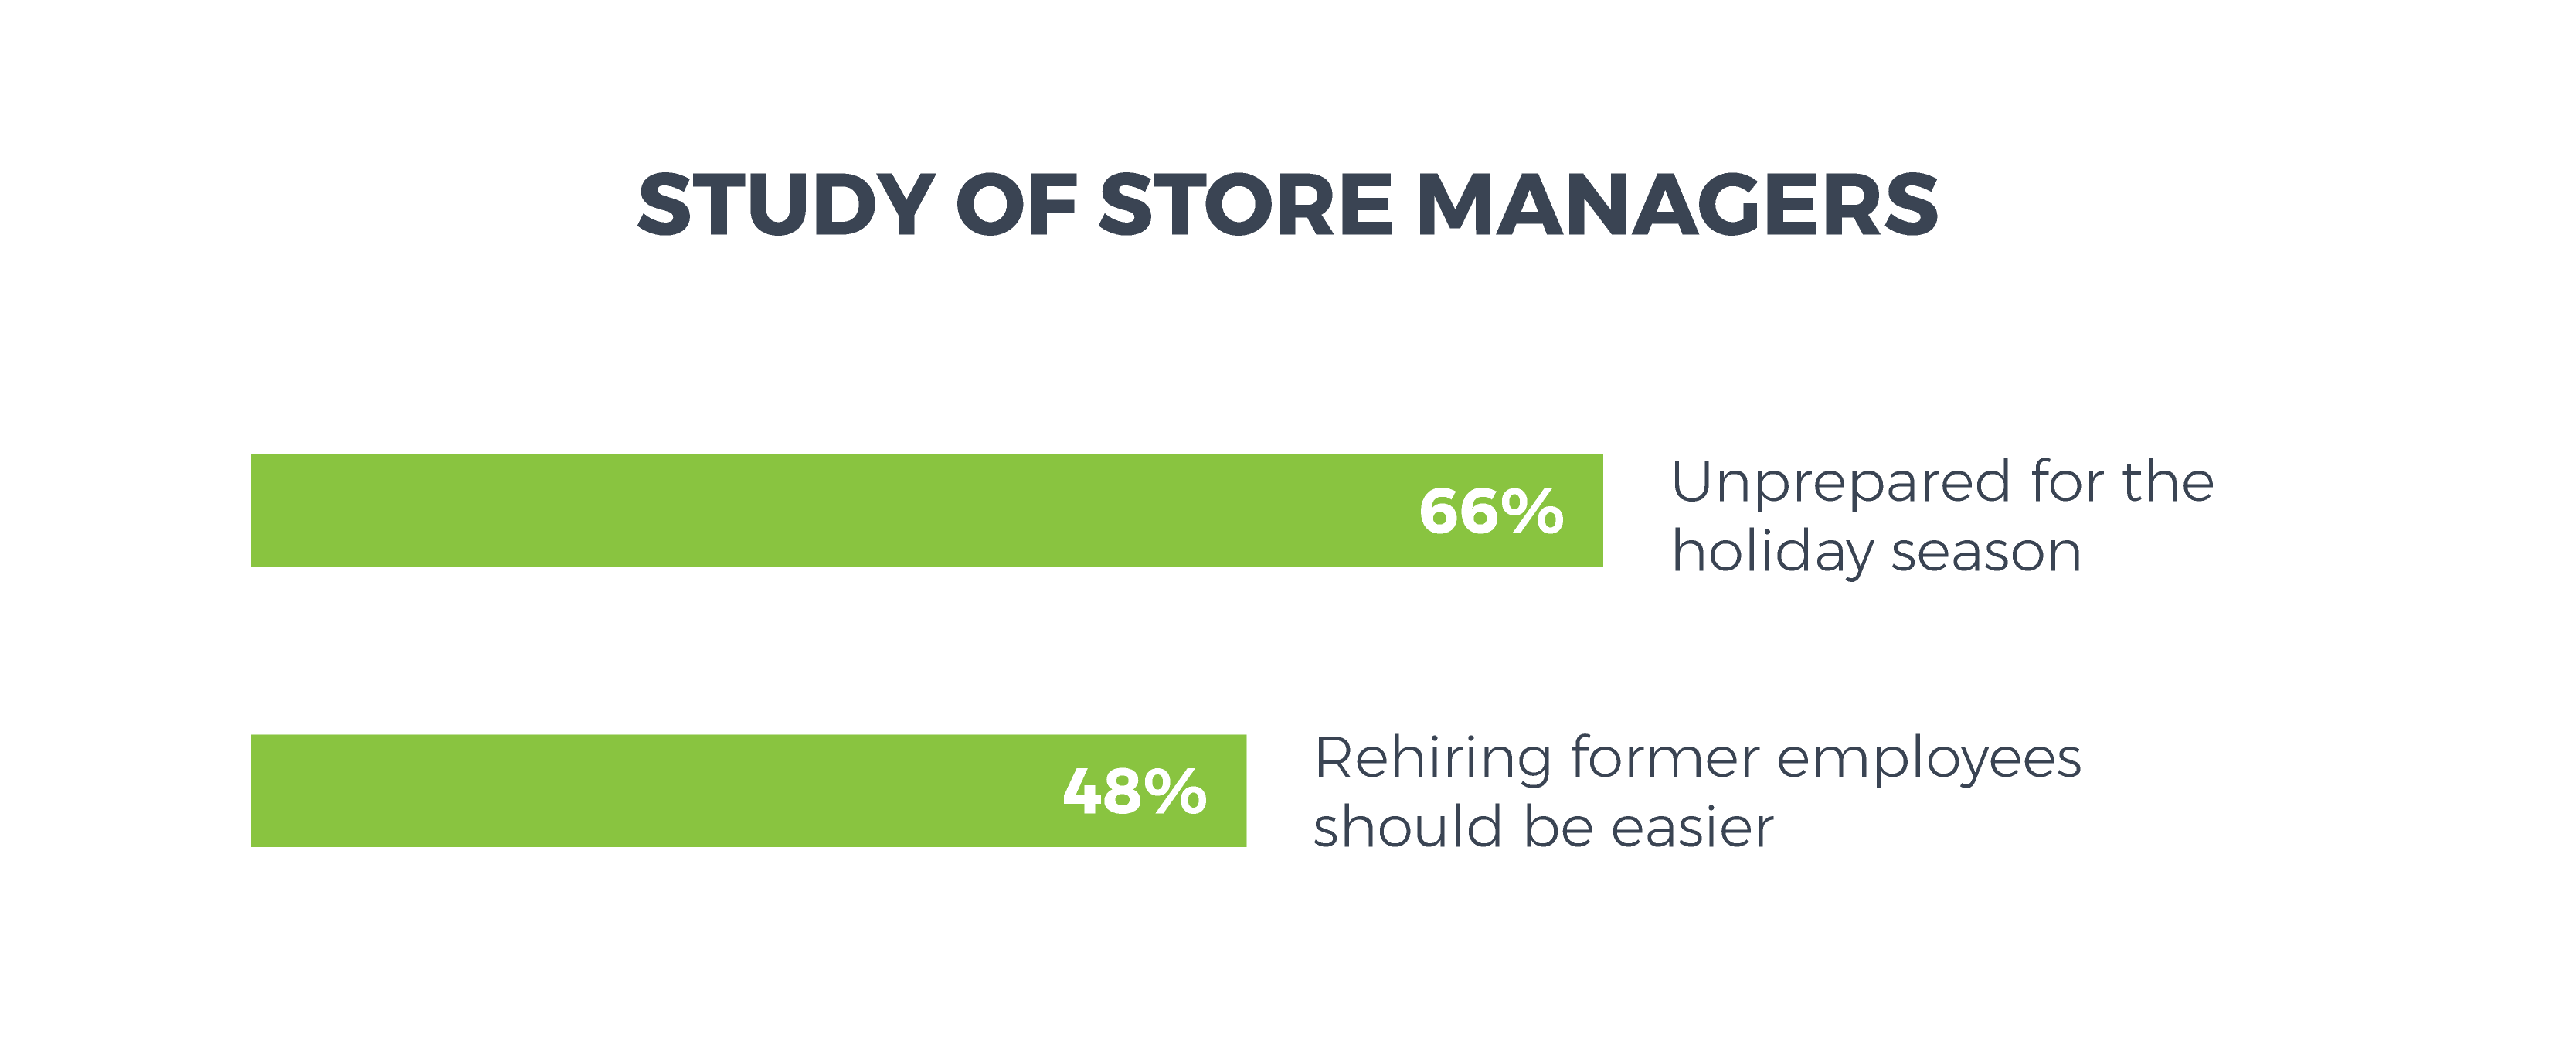 66% of store managers feel unprepared for the holiday season, and 48% feel that the process to rehire former employees should be easier